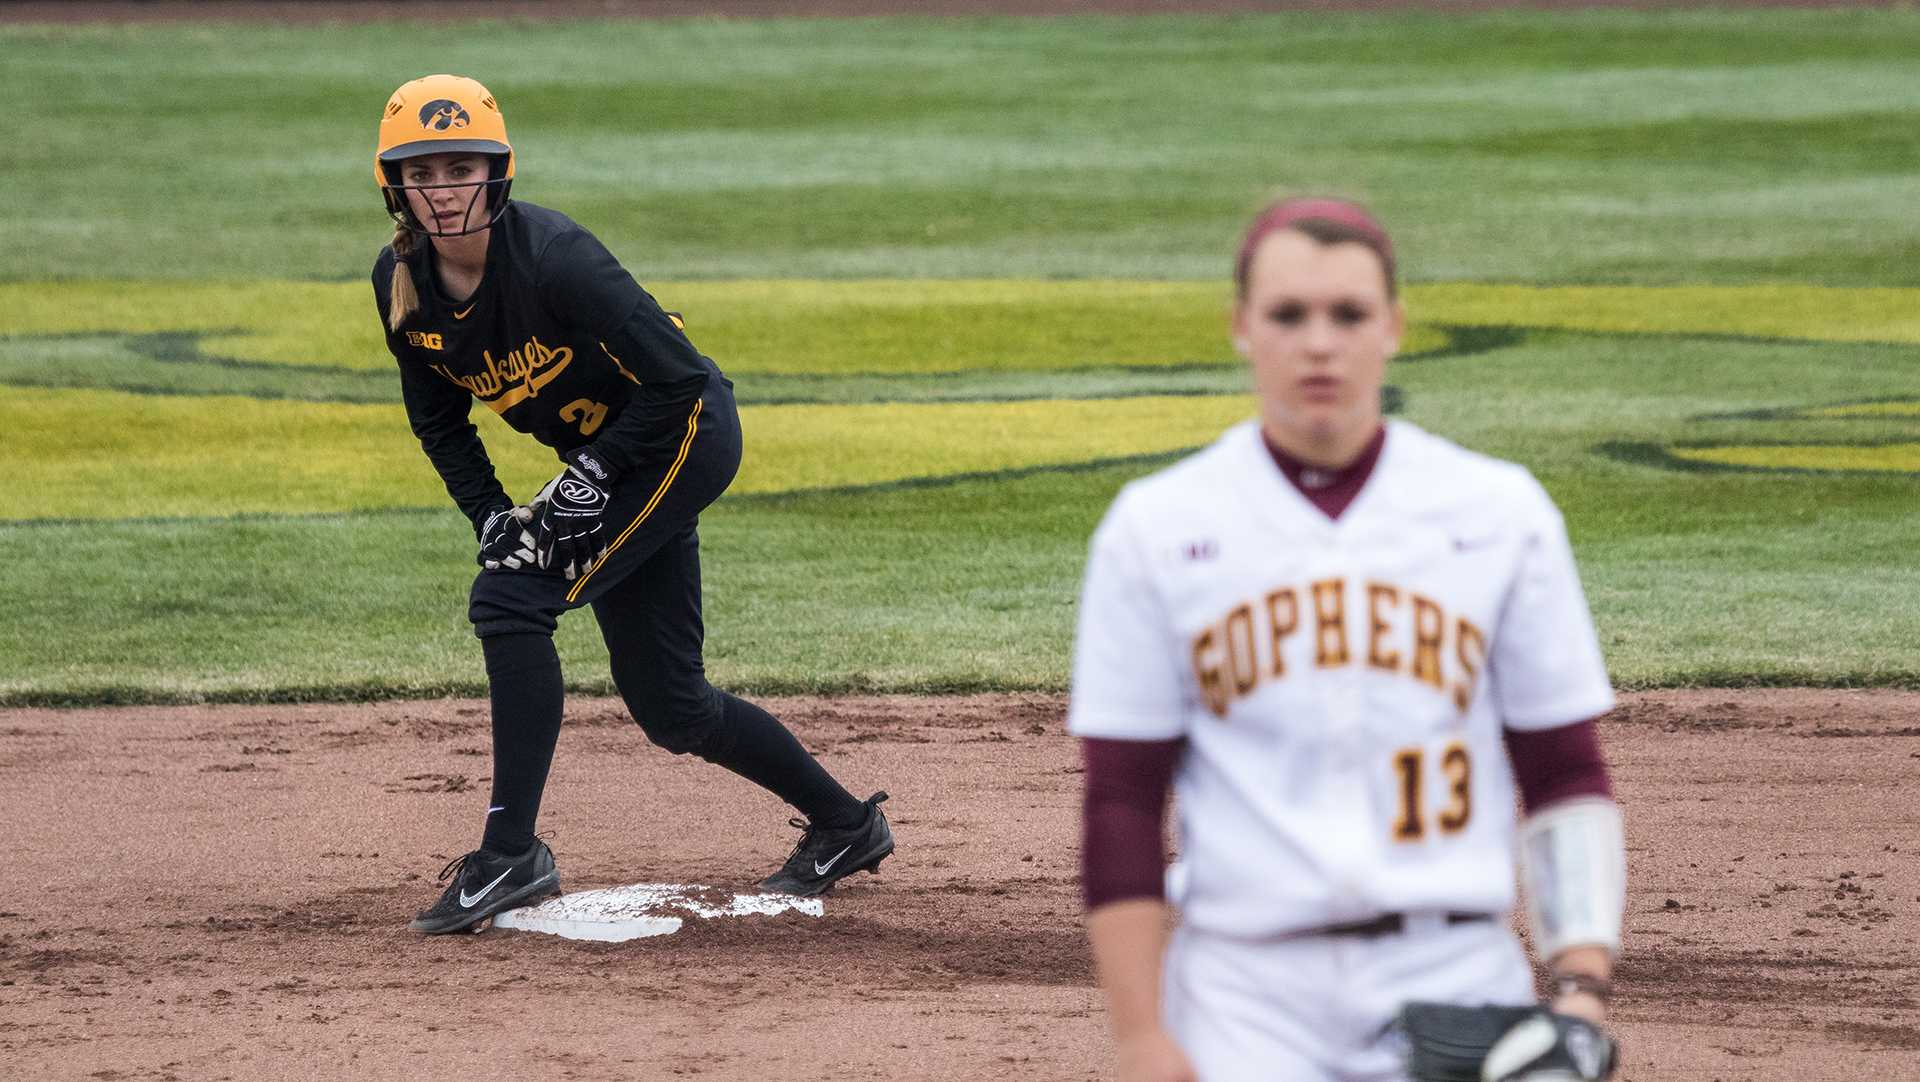 University of Iowa softball player  Allison Doocy stands on second base during a game against the University of Minnesota on Friday, Apr. 13, 2018. The Gophers defeated the Hawkeyes 6-2. (David Harmantas/The Daily Iowan)